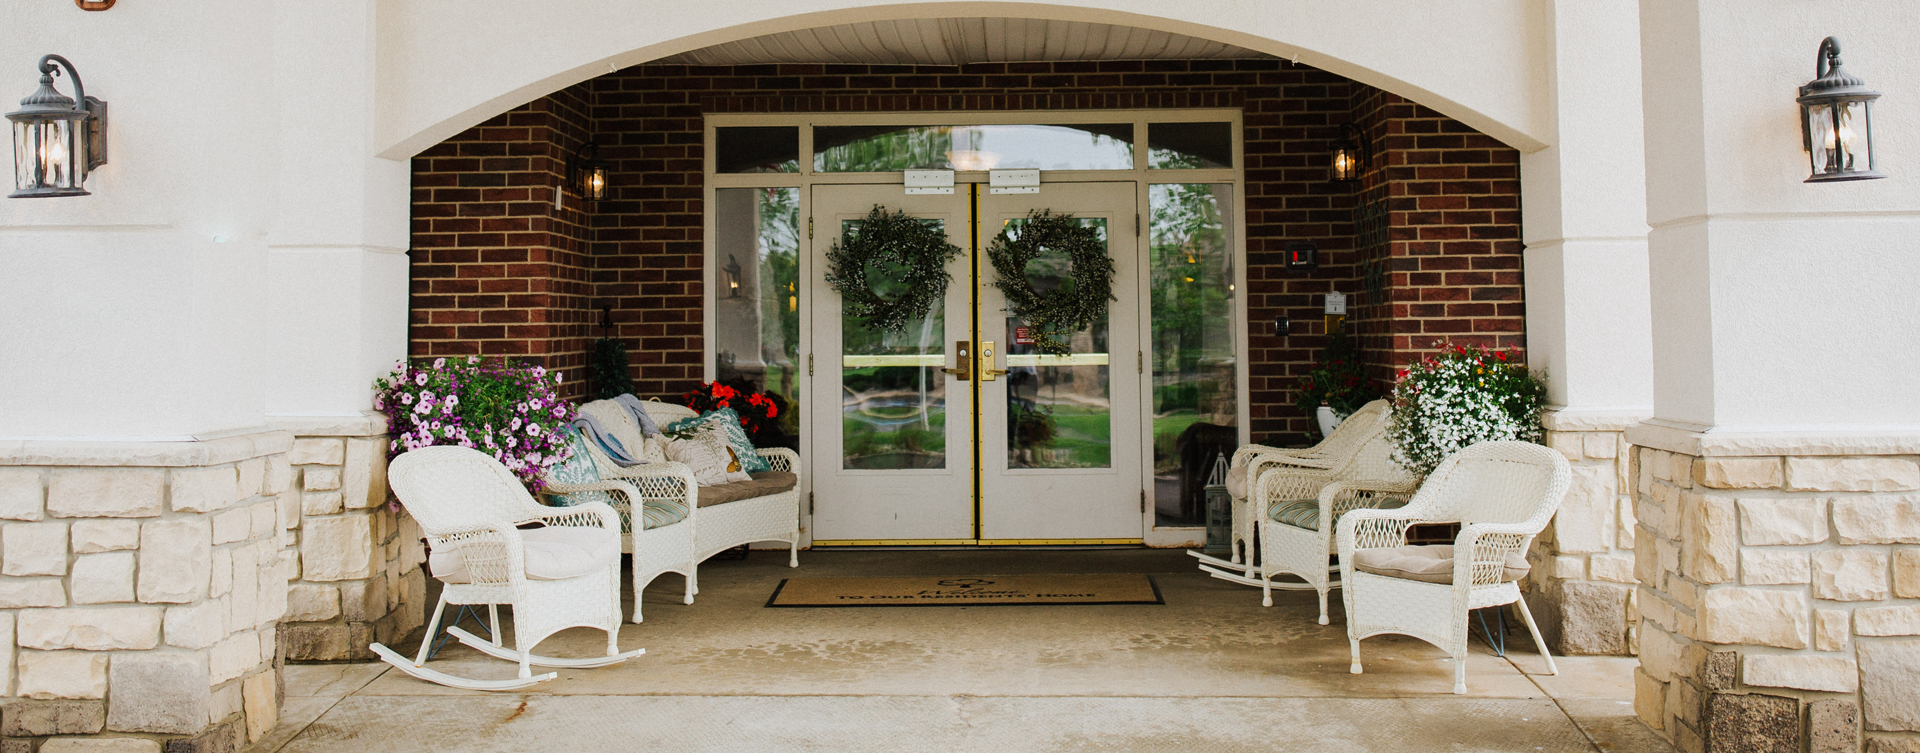 Relax in your favorite chair on the porch at Bickford of Bourbonnais